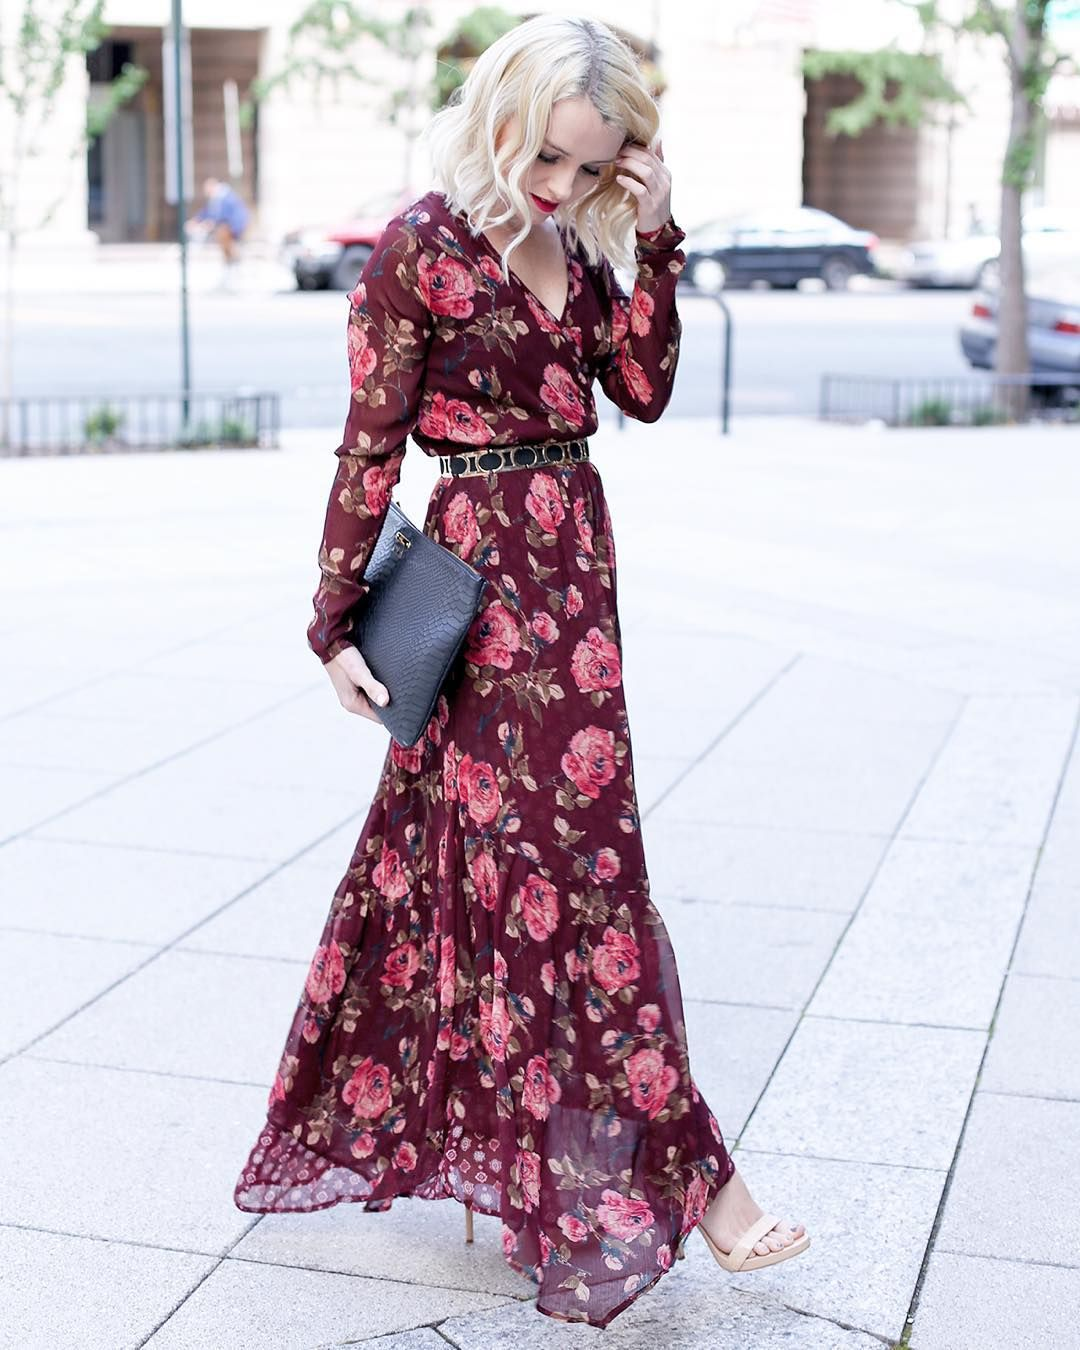 Cathy On Instagram Falling Back In Love With Abercrombie Thanks To This Gorgeou Long Sleeve Floral Maxi Dress Maxi Dresses Casual Wedding Guest Outfit Fall [ 1350 x 1080 Pixel ]